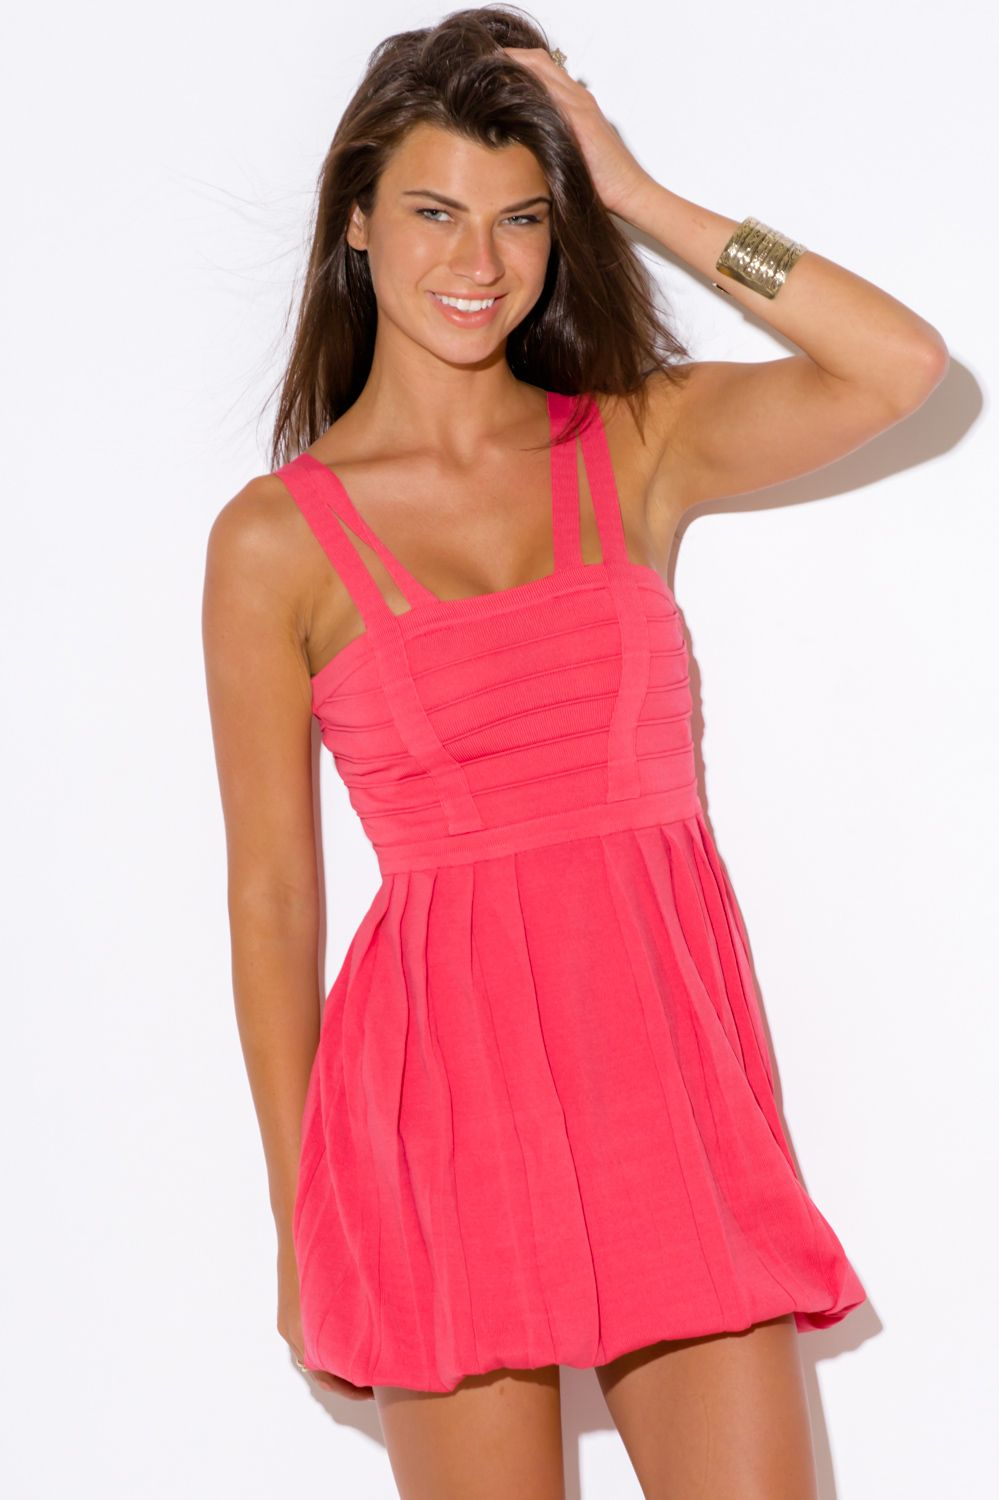 29297d7c3ad8 LITTLE SECRETS | coral pink knit bubble cocktail party bandage club mini  dress - 1015store.com